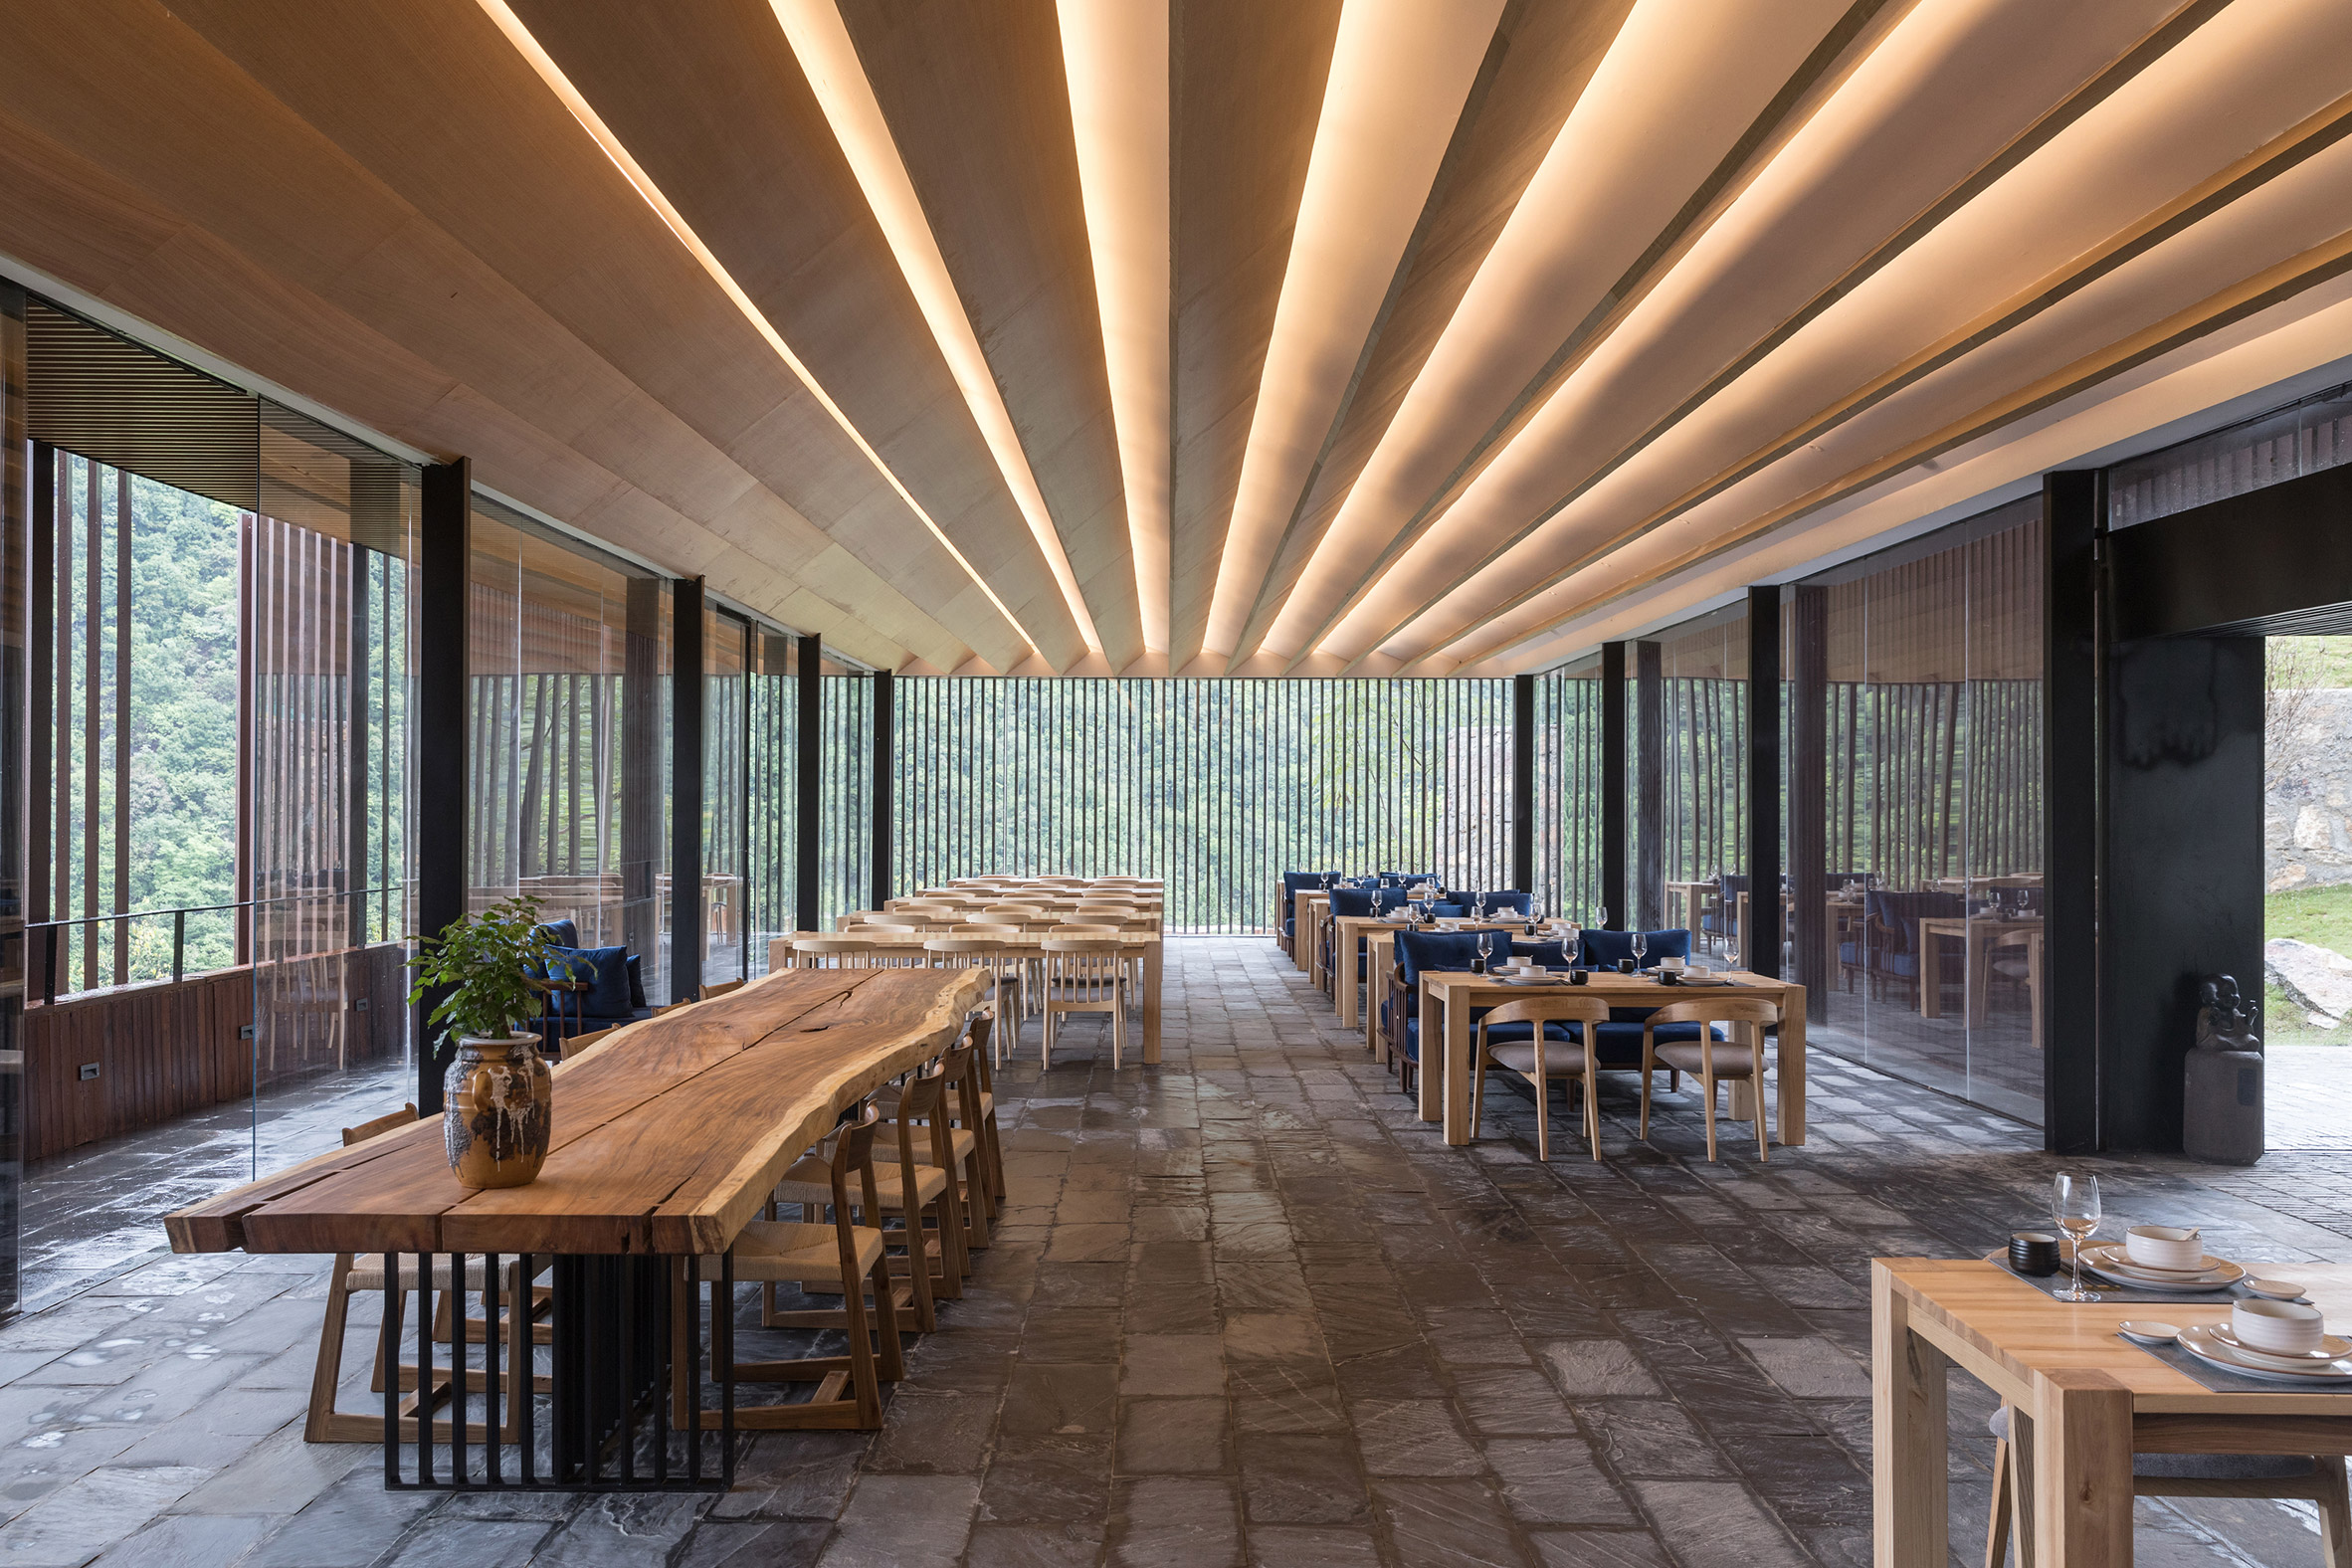 Mountain Bar and Restaurant by ZJJZ Atelier